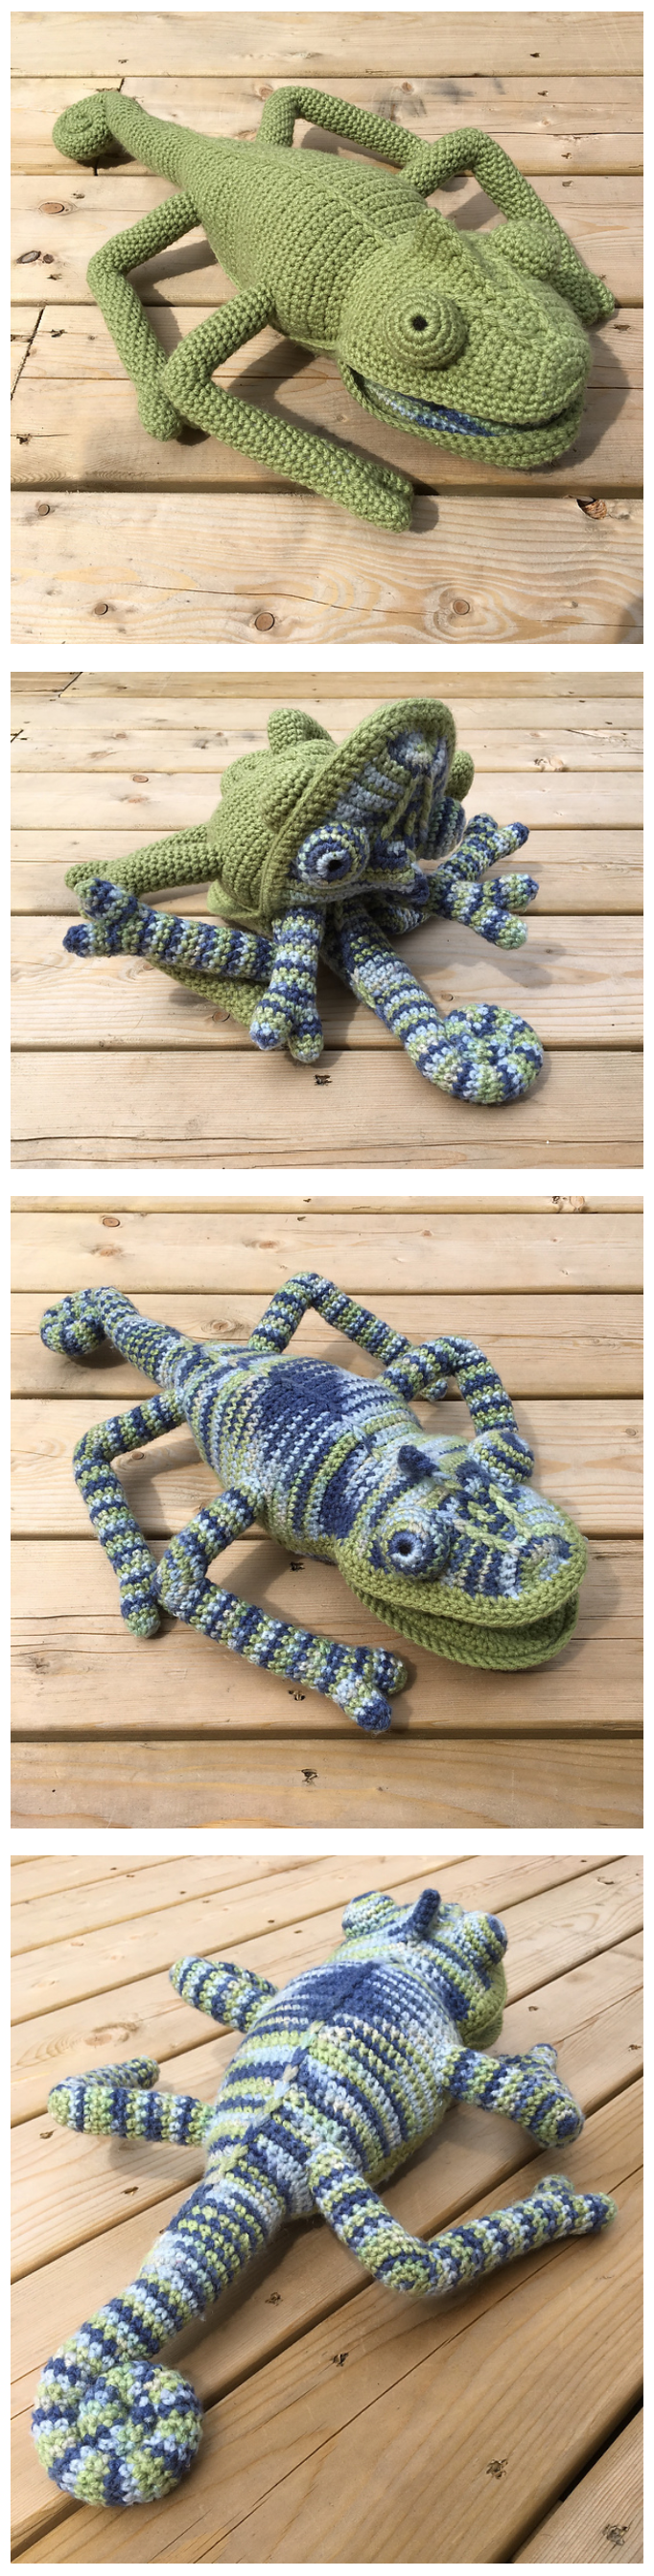 Crochet This Incredible Color-Changing Chameleon – Guaranteed To ...